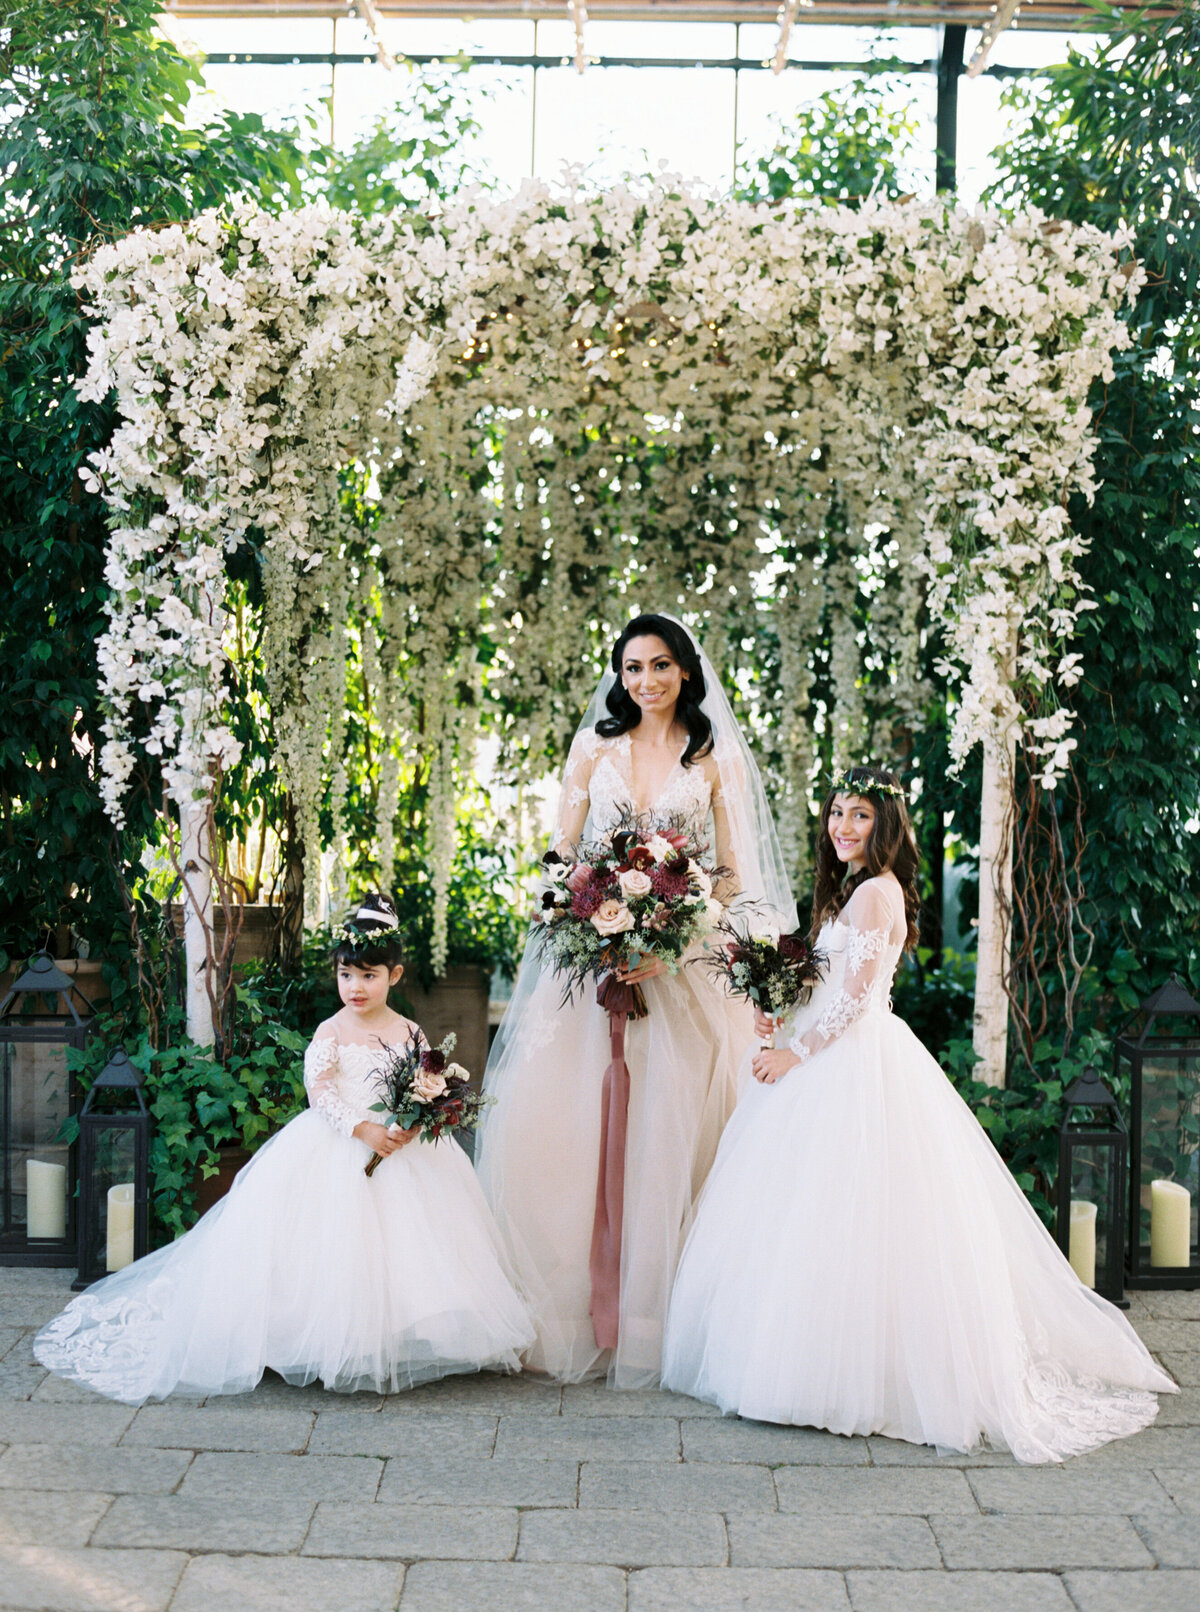 Kaylea Moreno_wedding gallery - Rami-Cassandra-Wedding-krmorenophoto-305